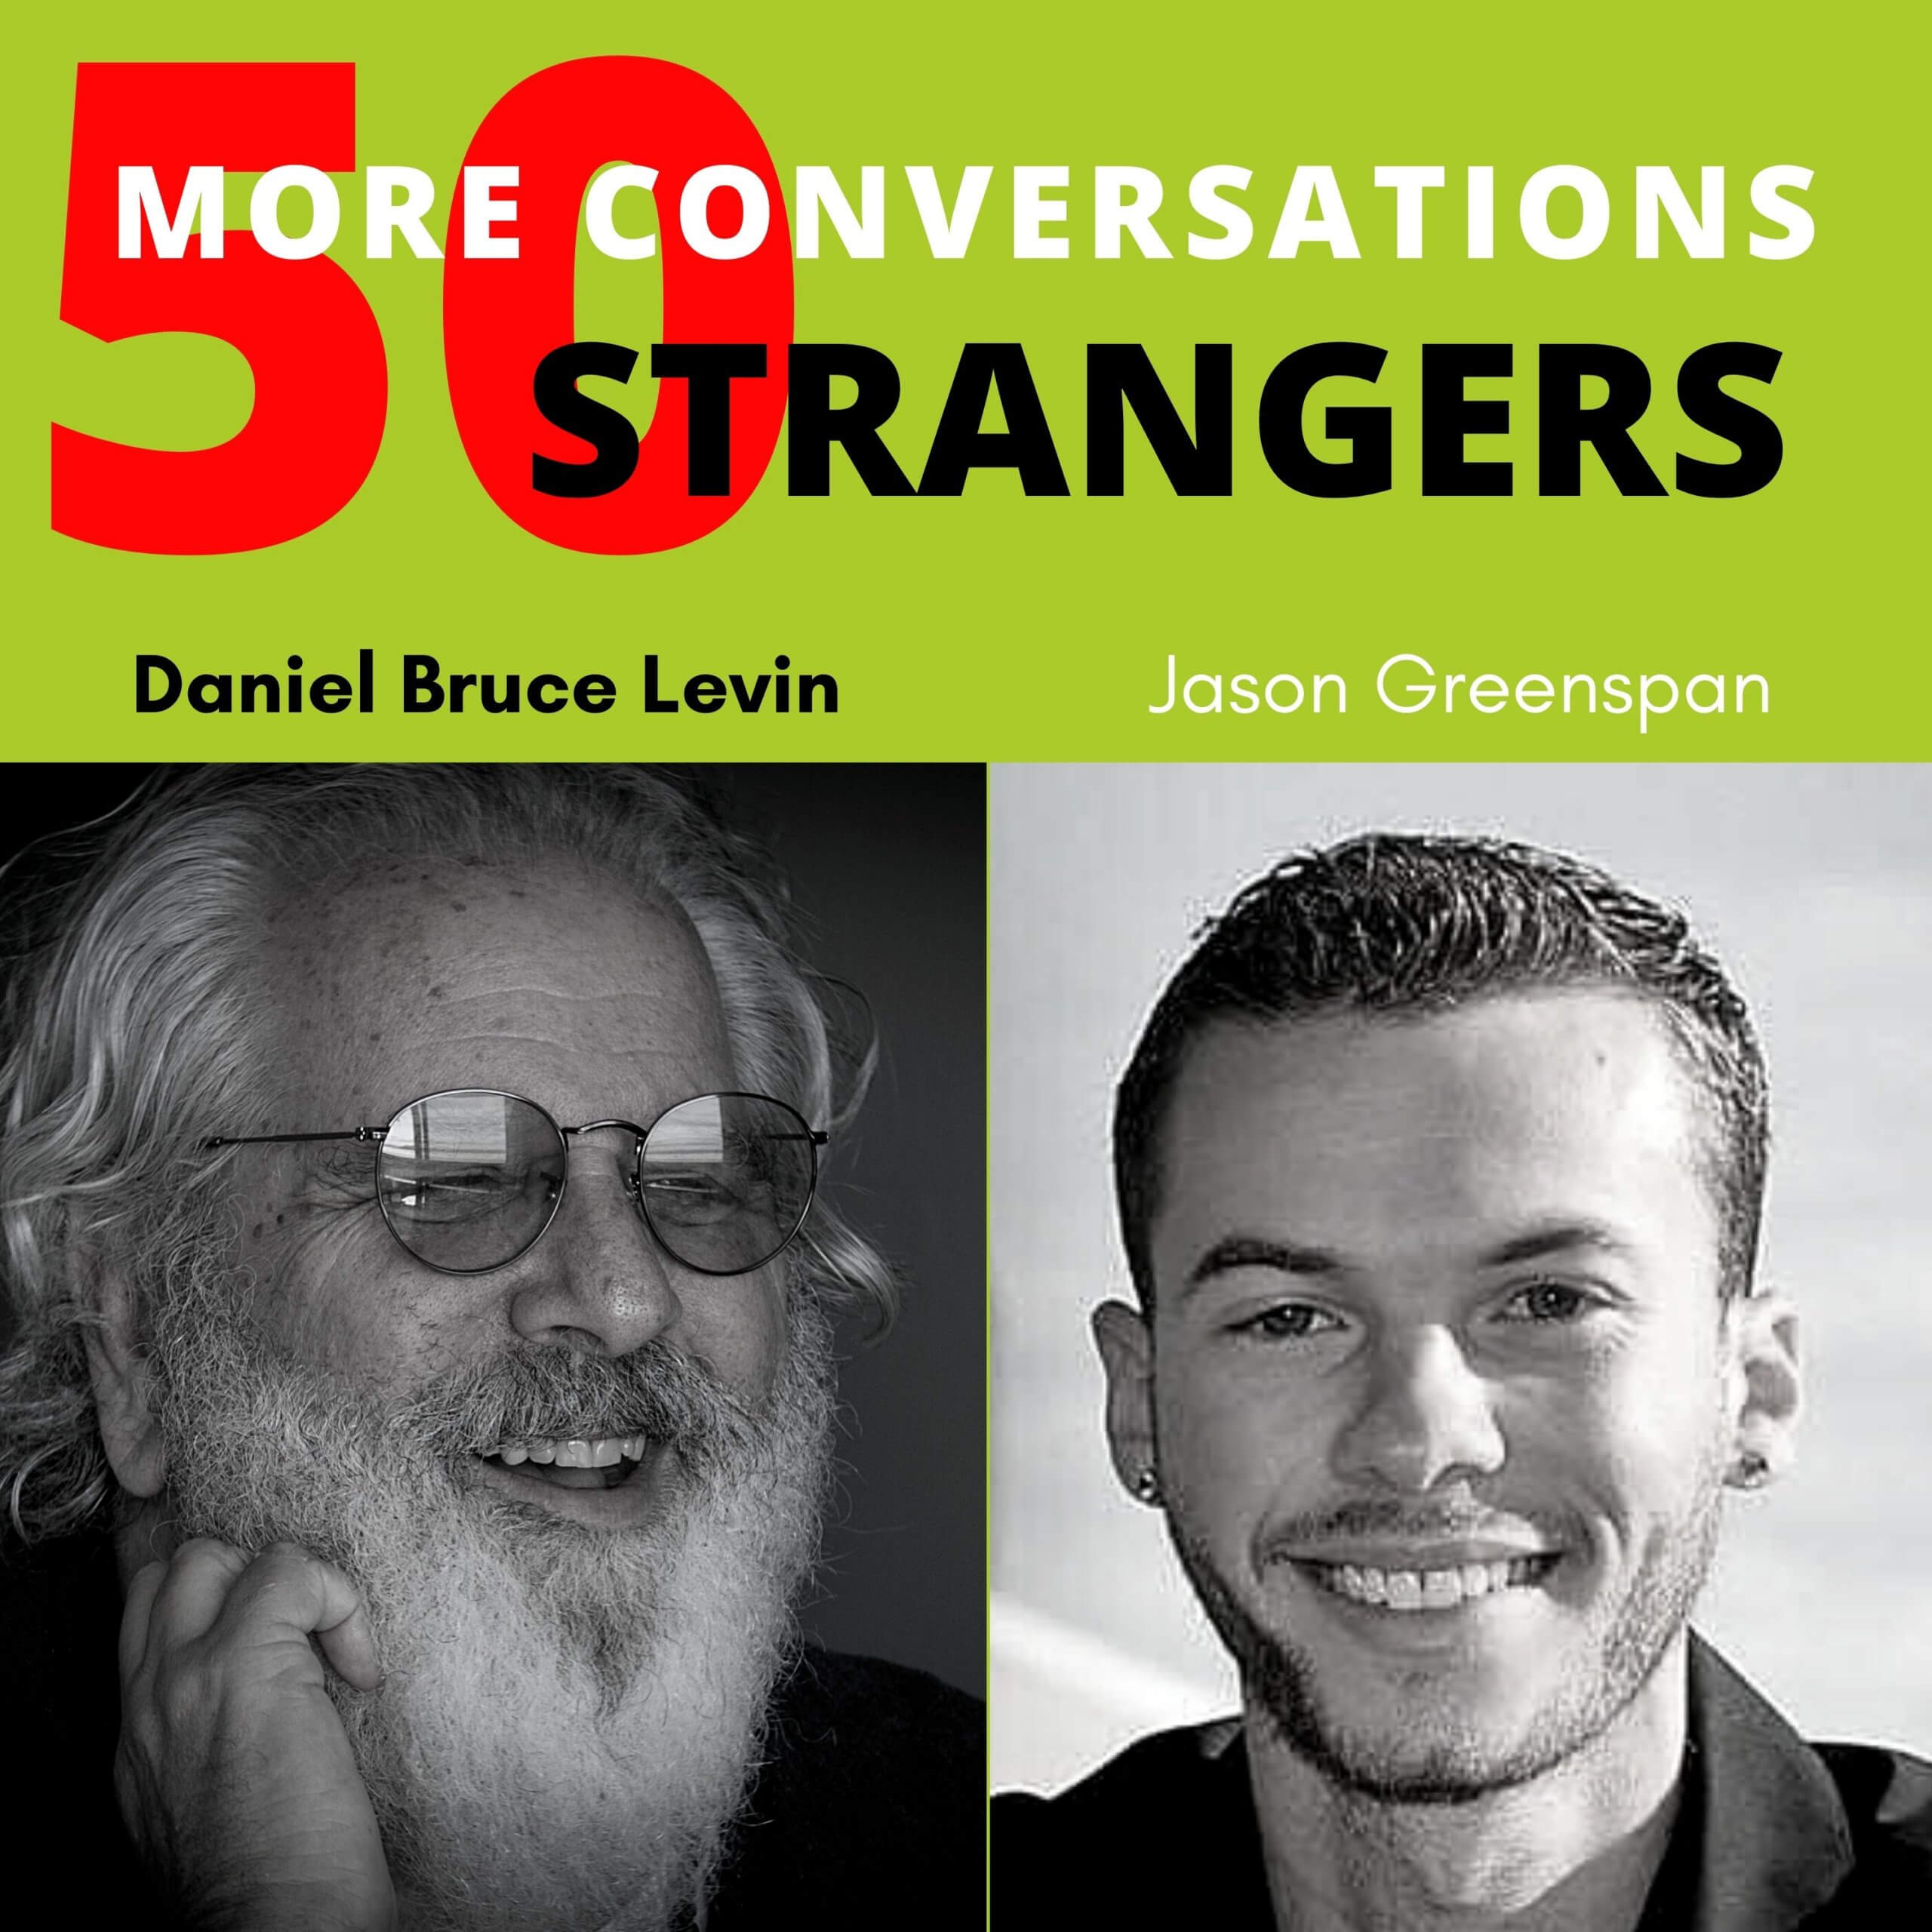 50 More Conversations with 50 More Strangers with Jason Greenspan